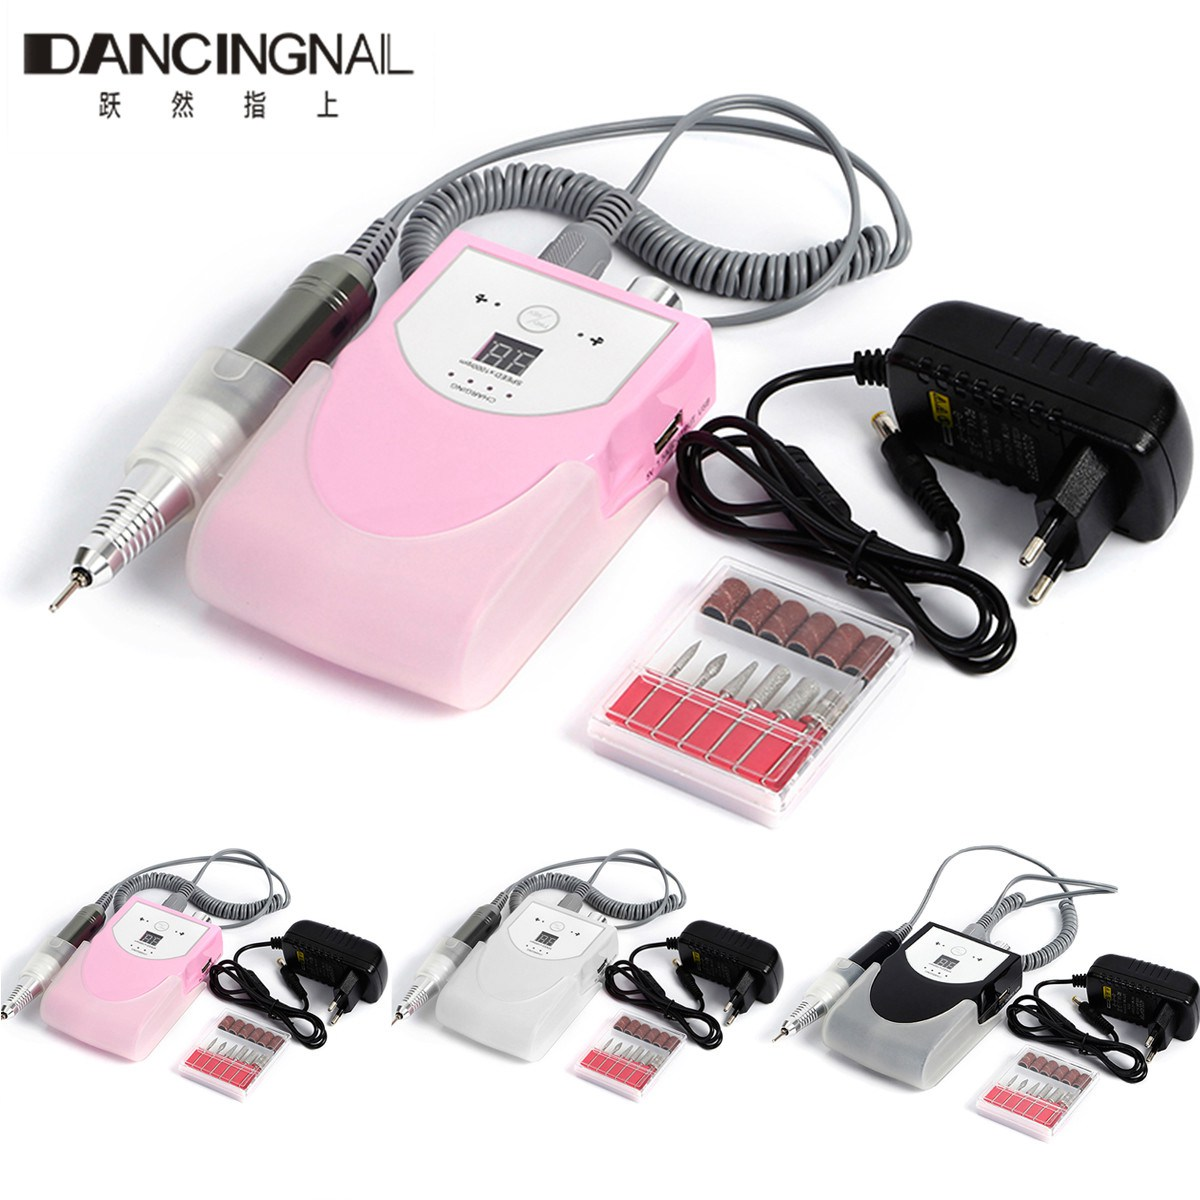 Rechargeable 30000RPM Electric Nail Drill Machine Acrylic Nail File Polishing Polisher Cordless Manicure Pedicure Kit Set 2017 manicure nail polishing file wax brush purple off white 2 pcs